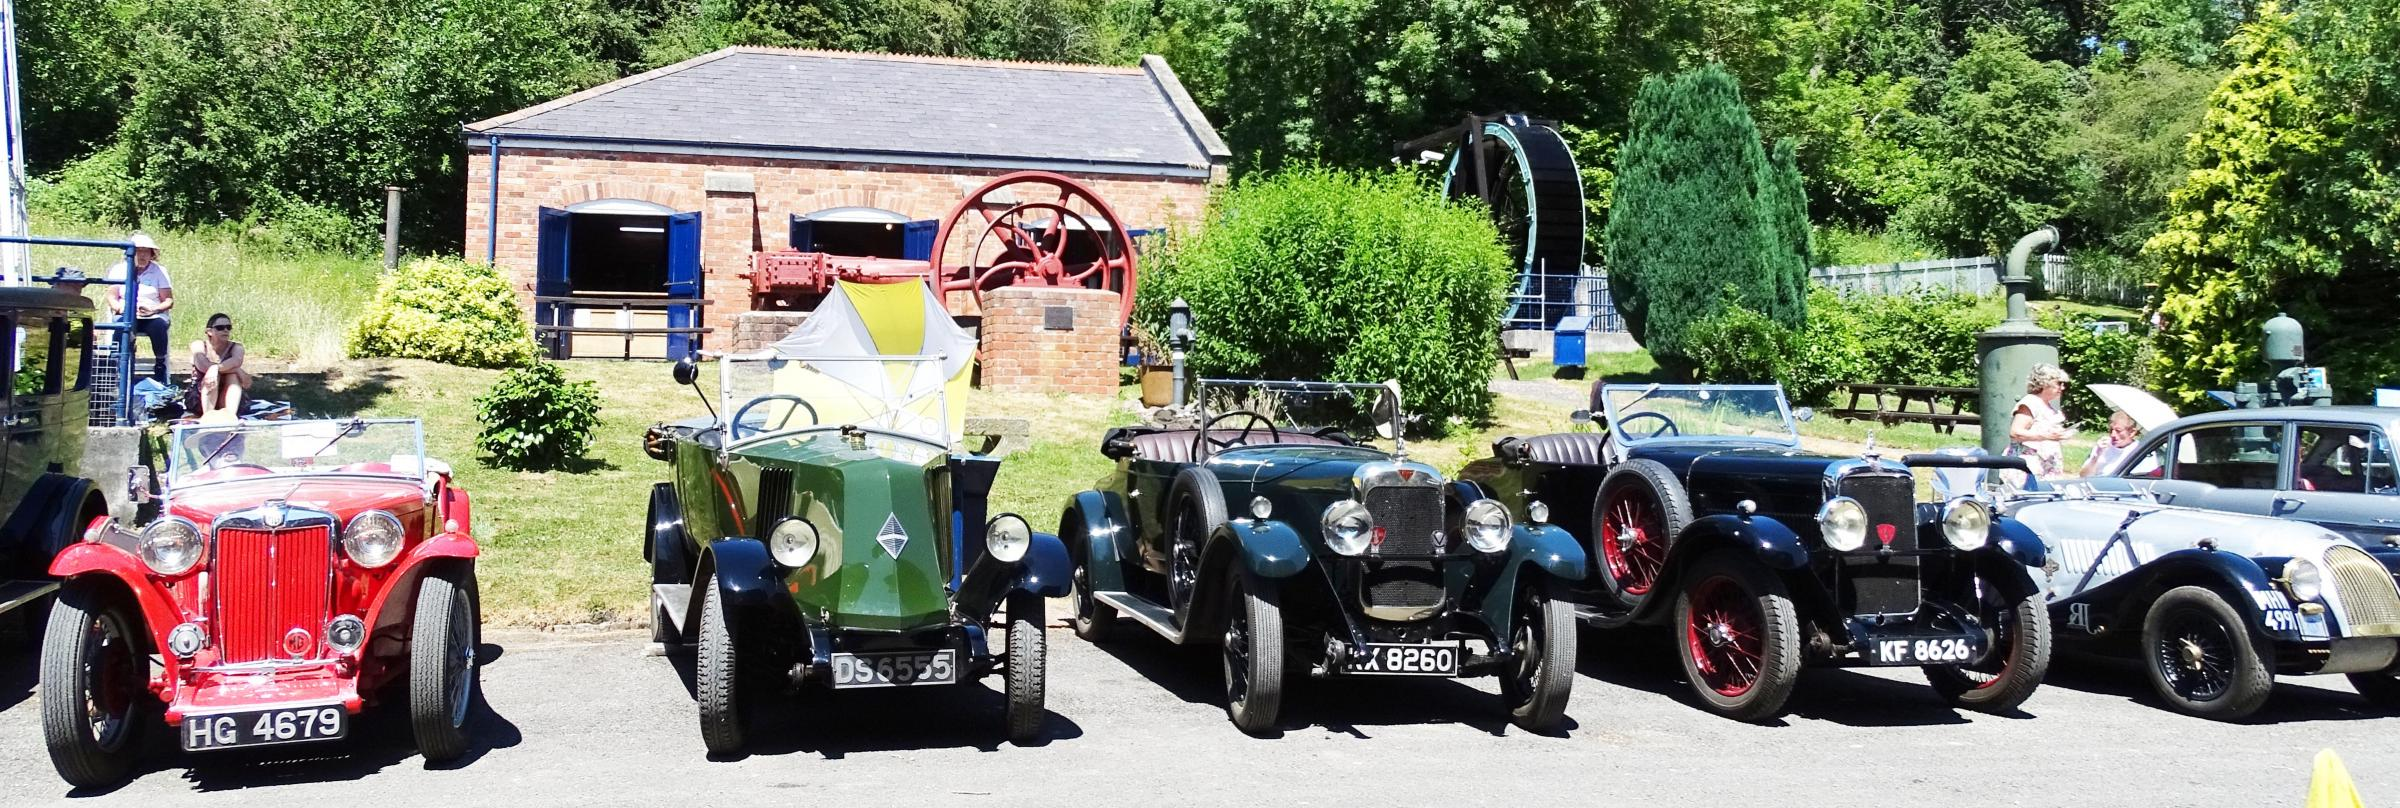 Waterworks Museum Gala Day